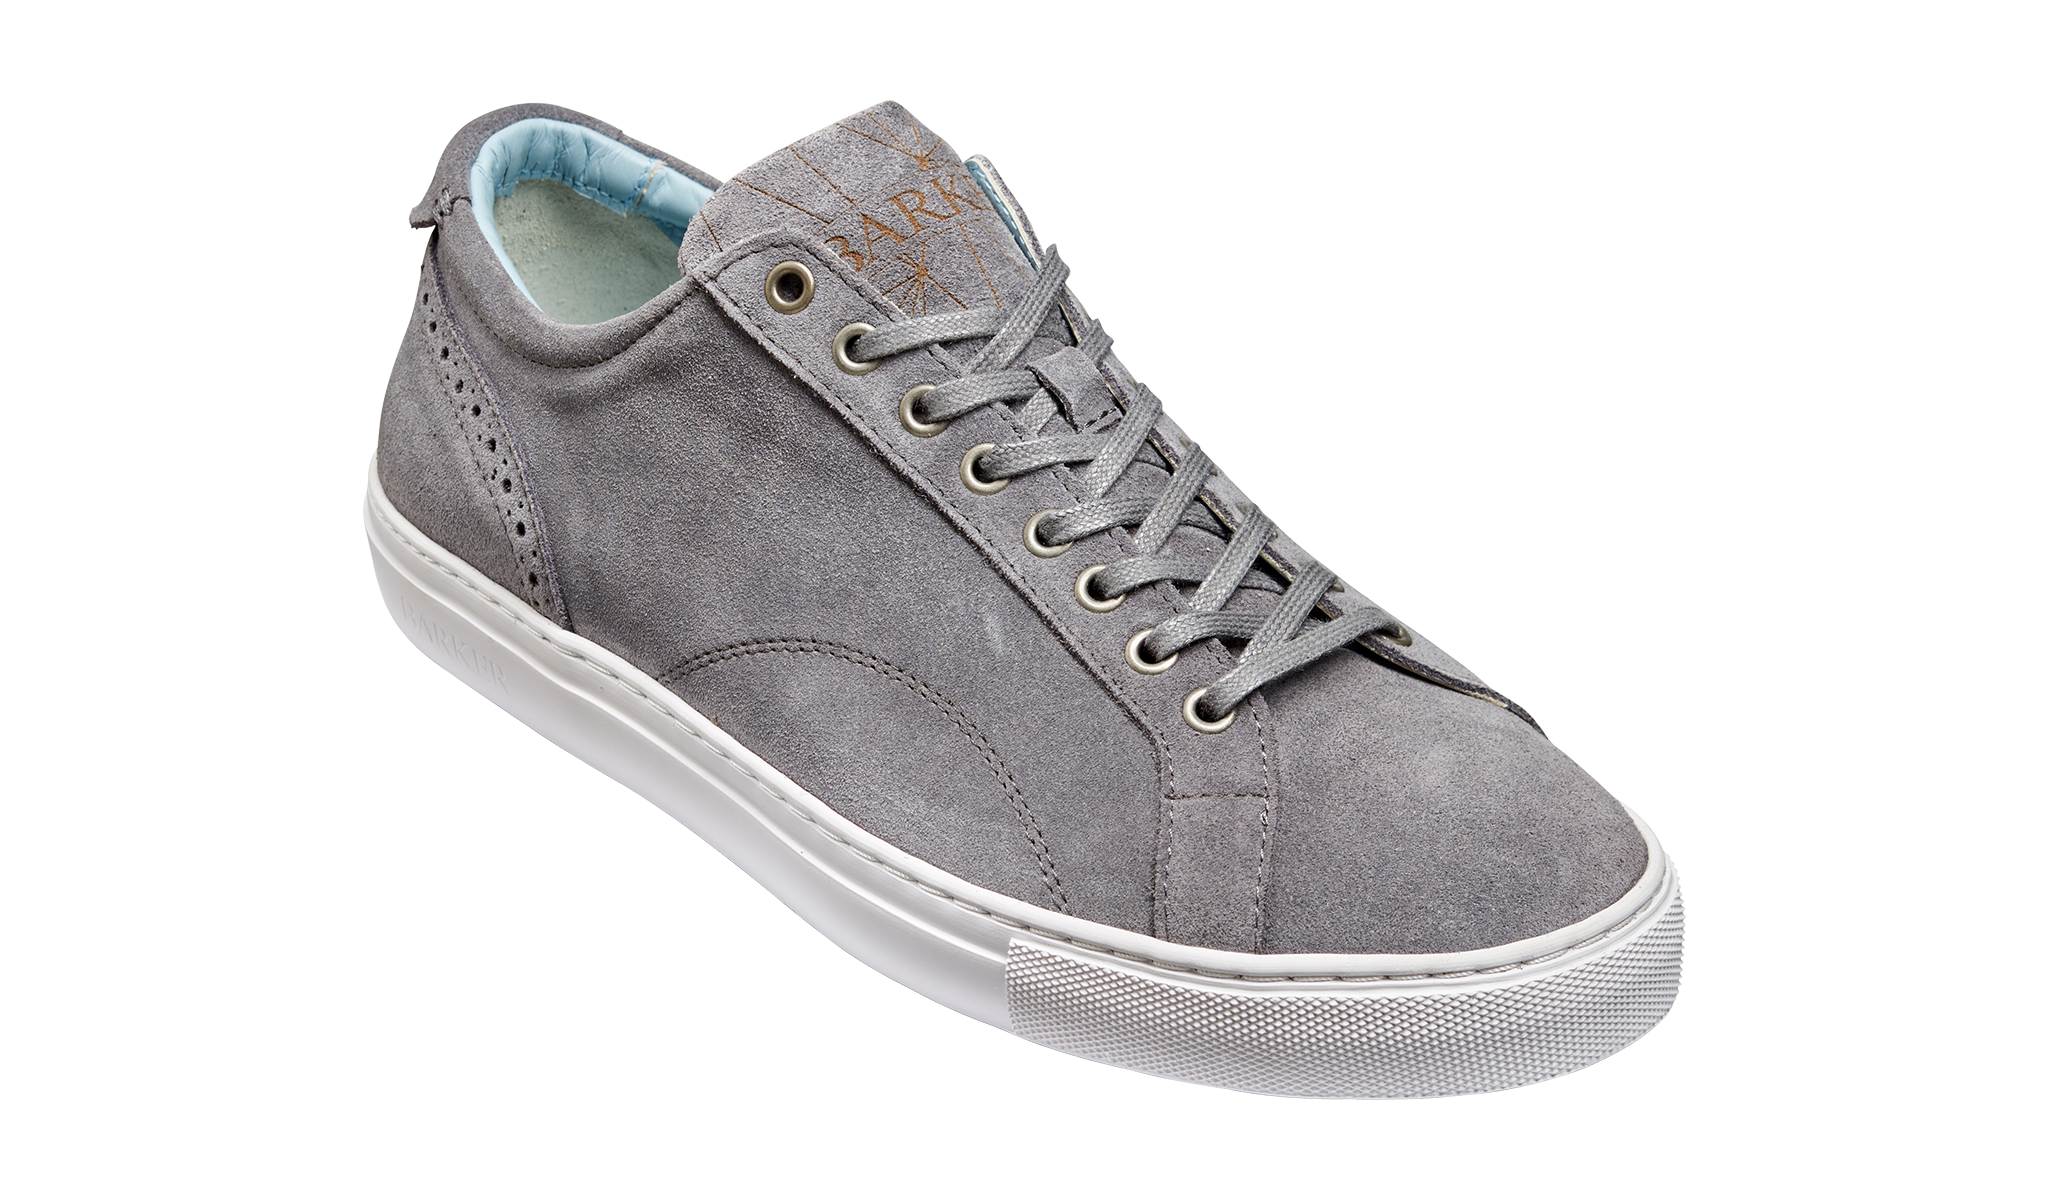 Men's grey suede sneaker by Barker